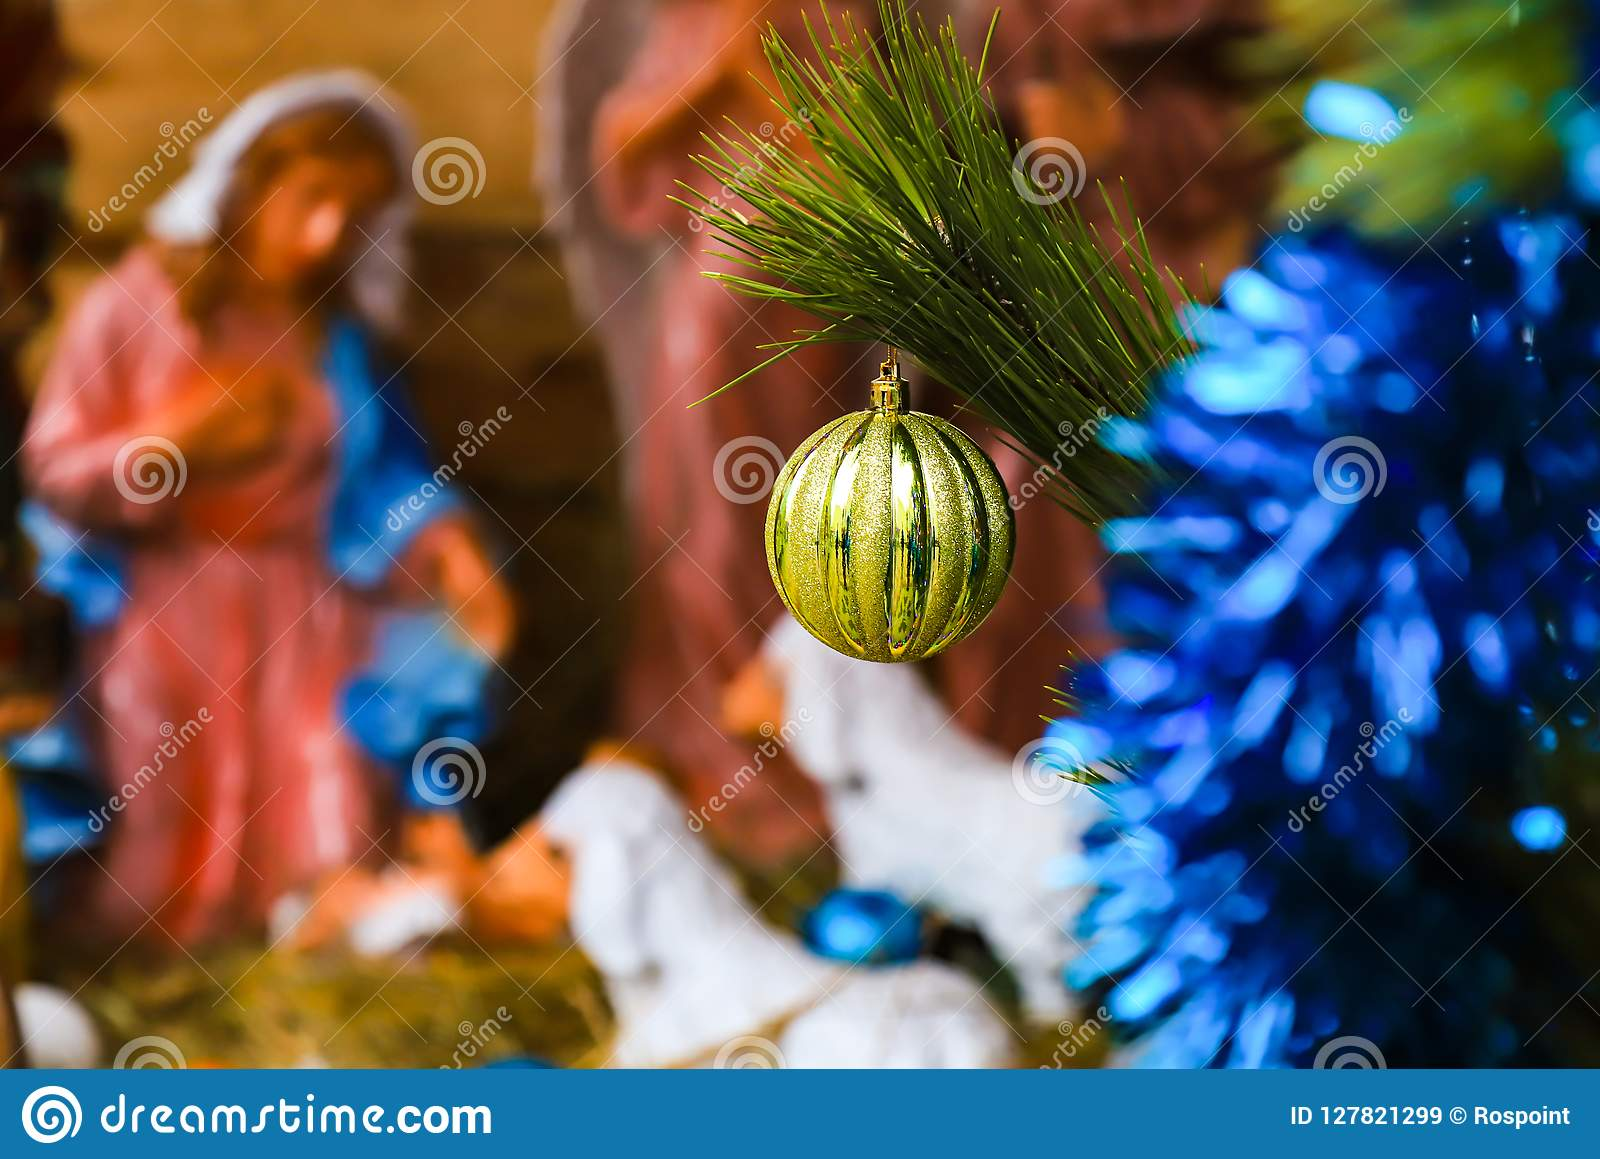 Christmas tree toy, yellow ball, on the background of a blurred image of the Christmas scene of the birth of Christ